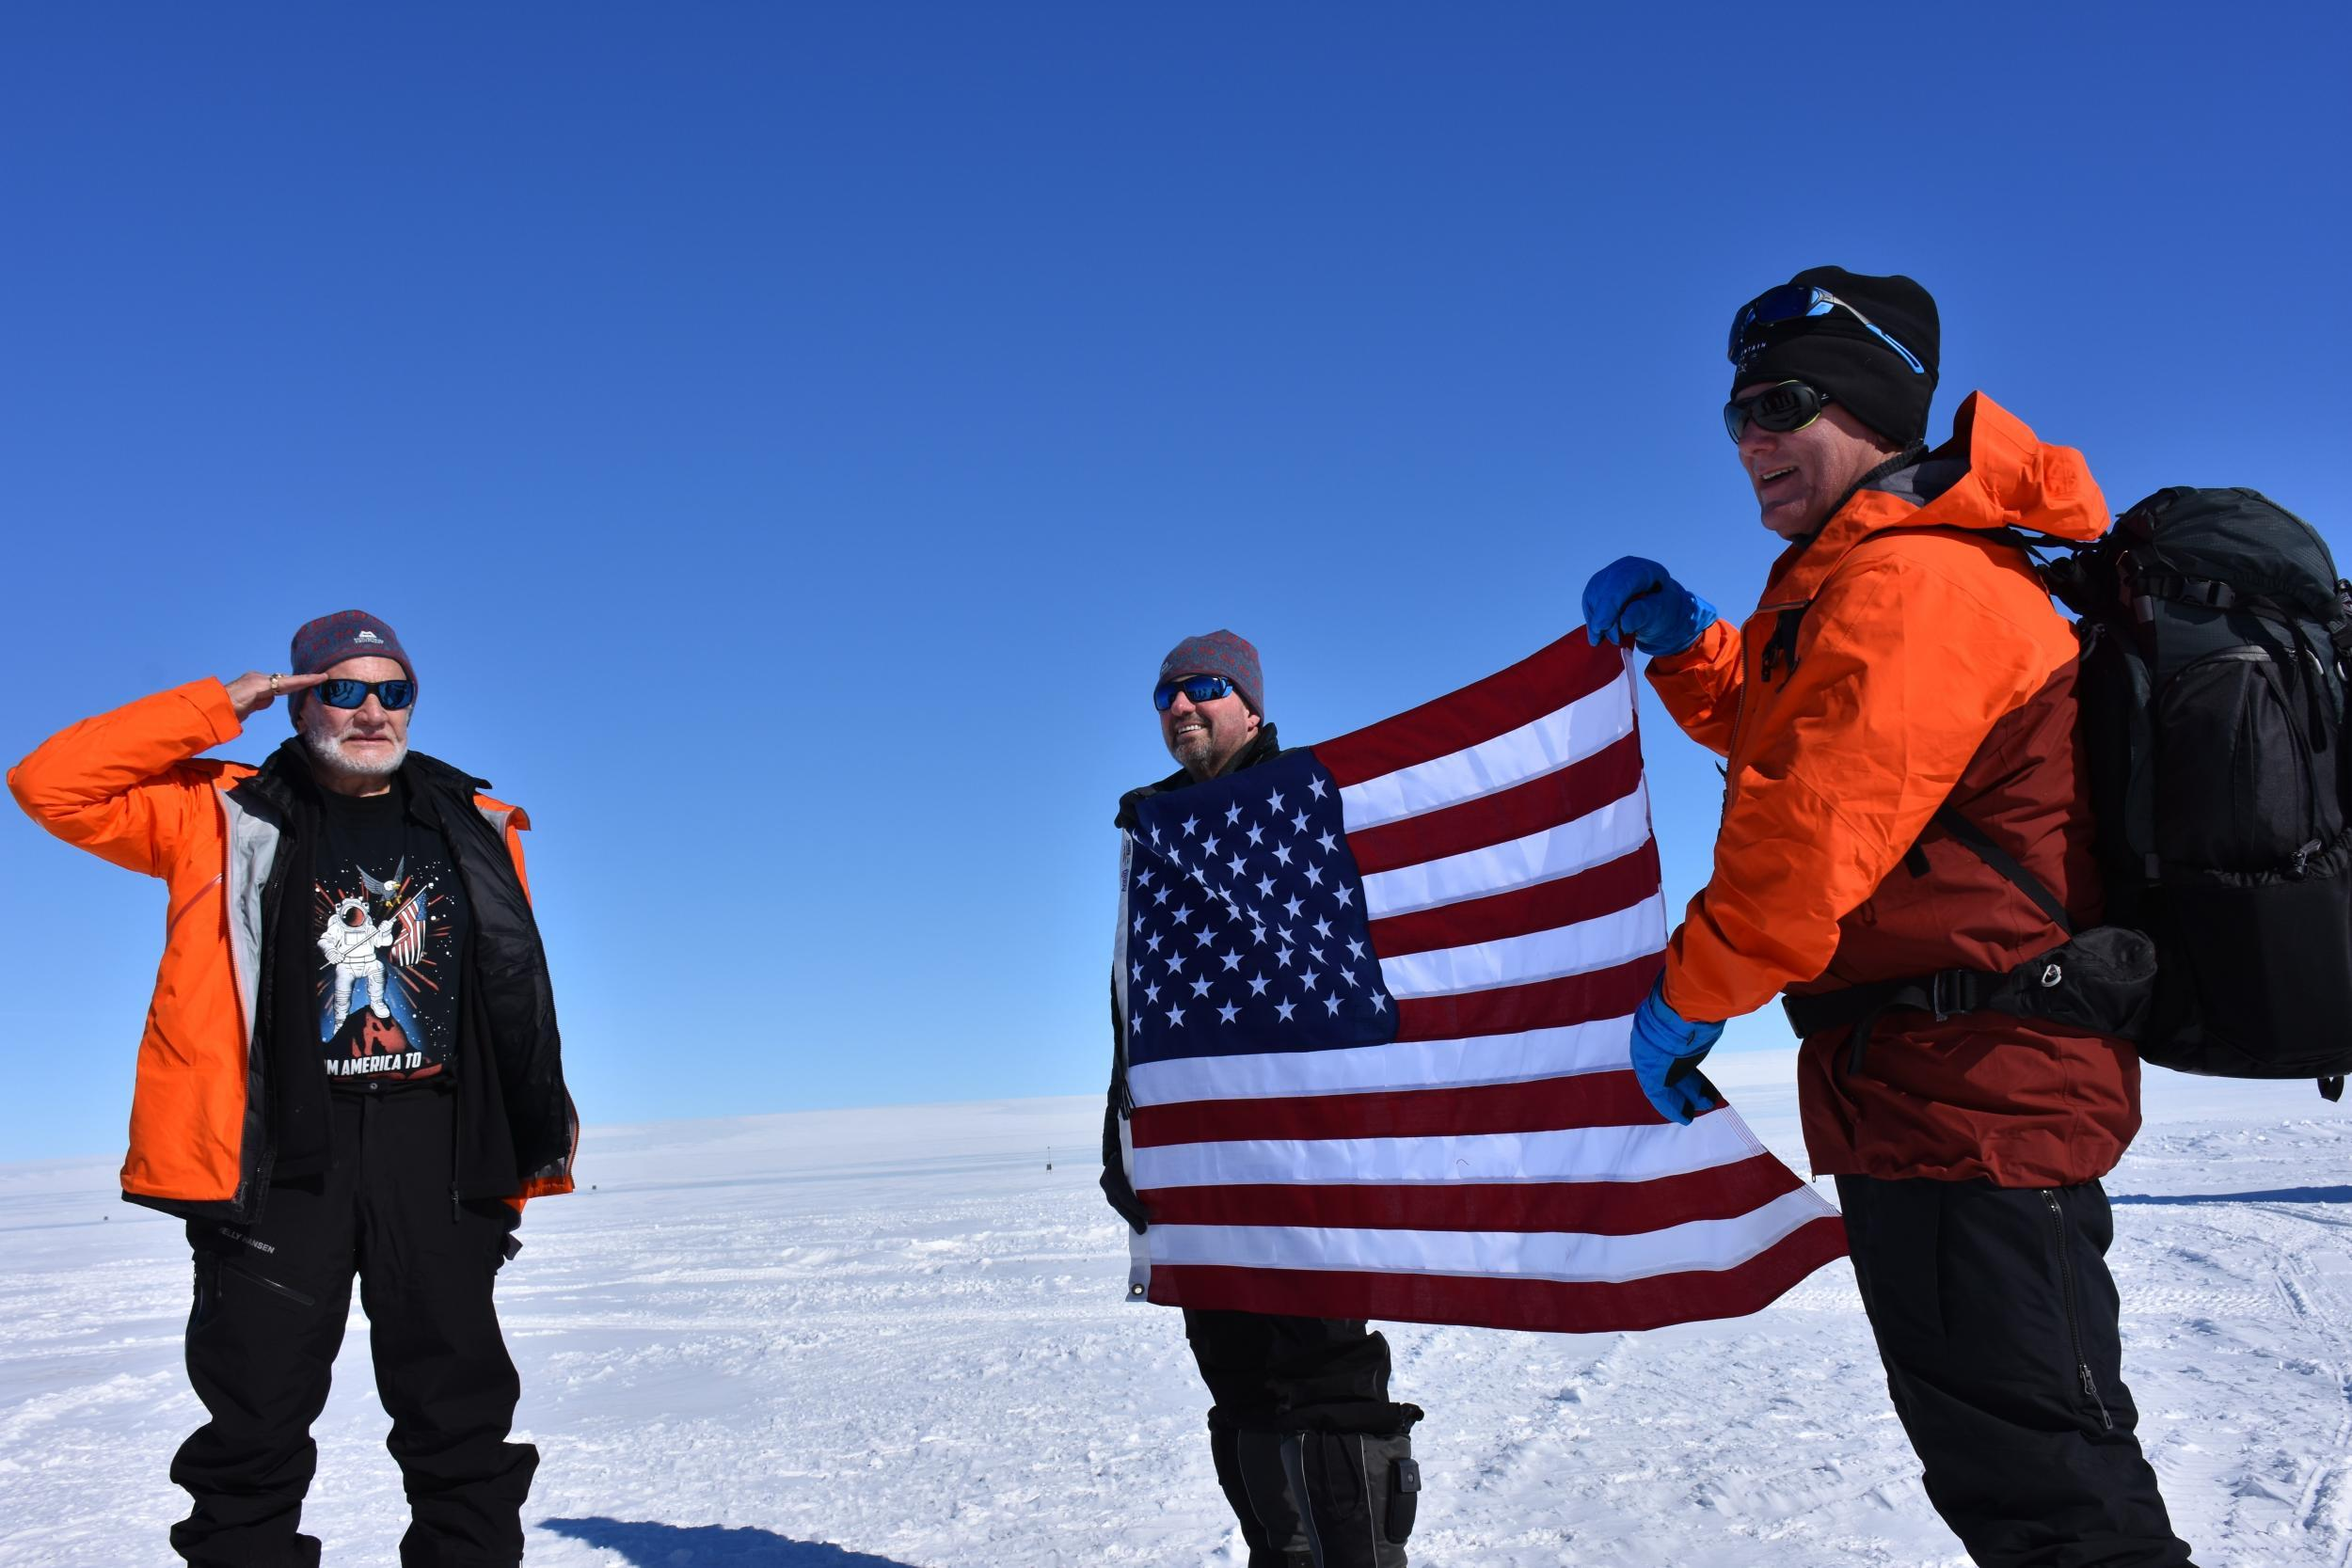 What it's like to explore Antarctica with Buzz Aldrin